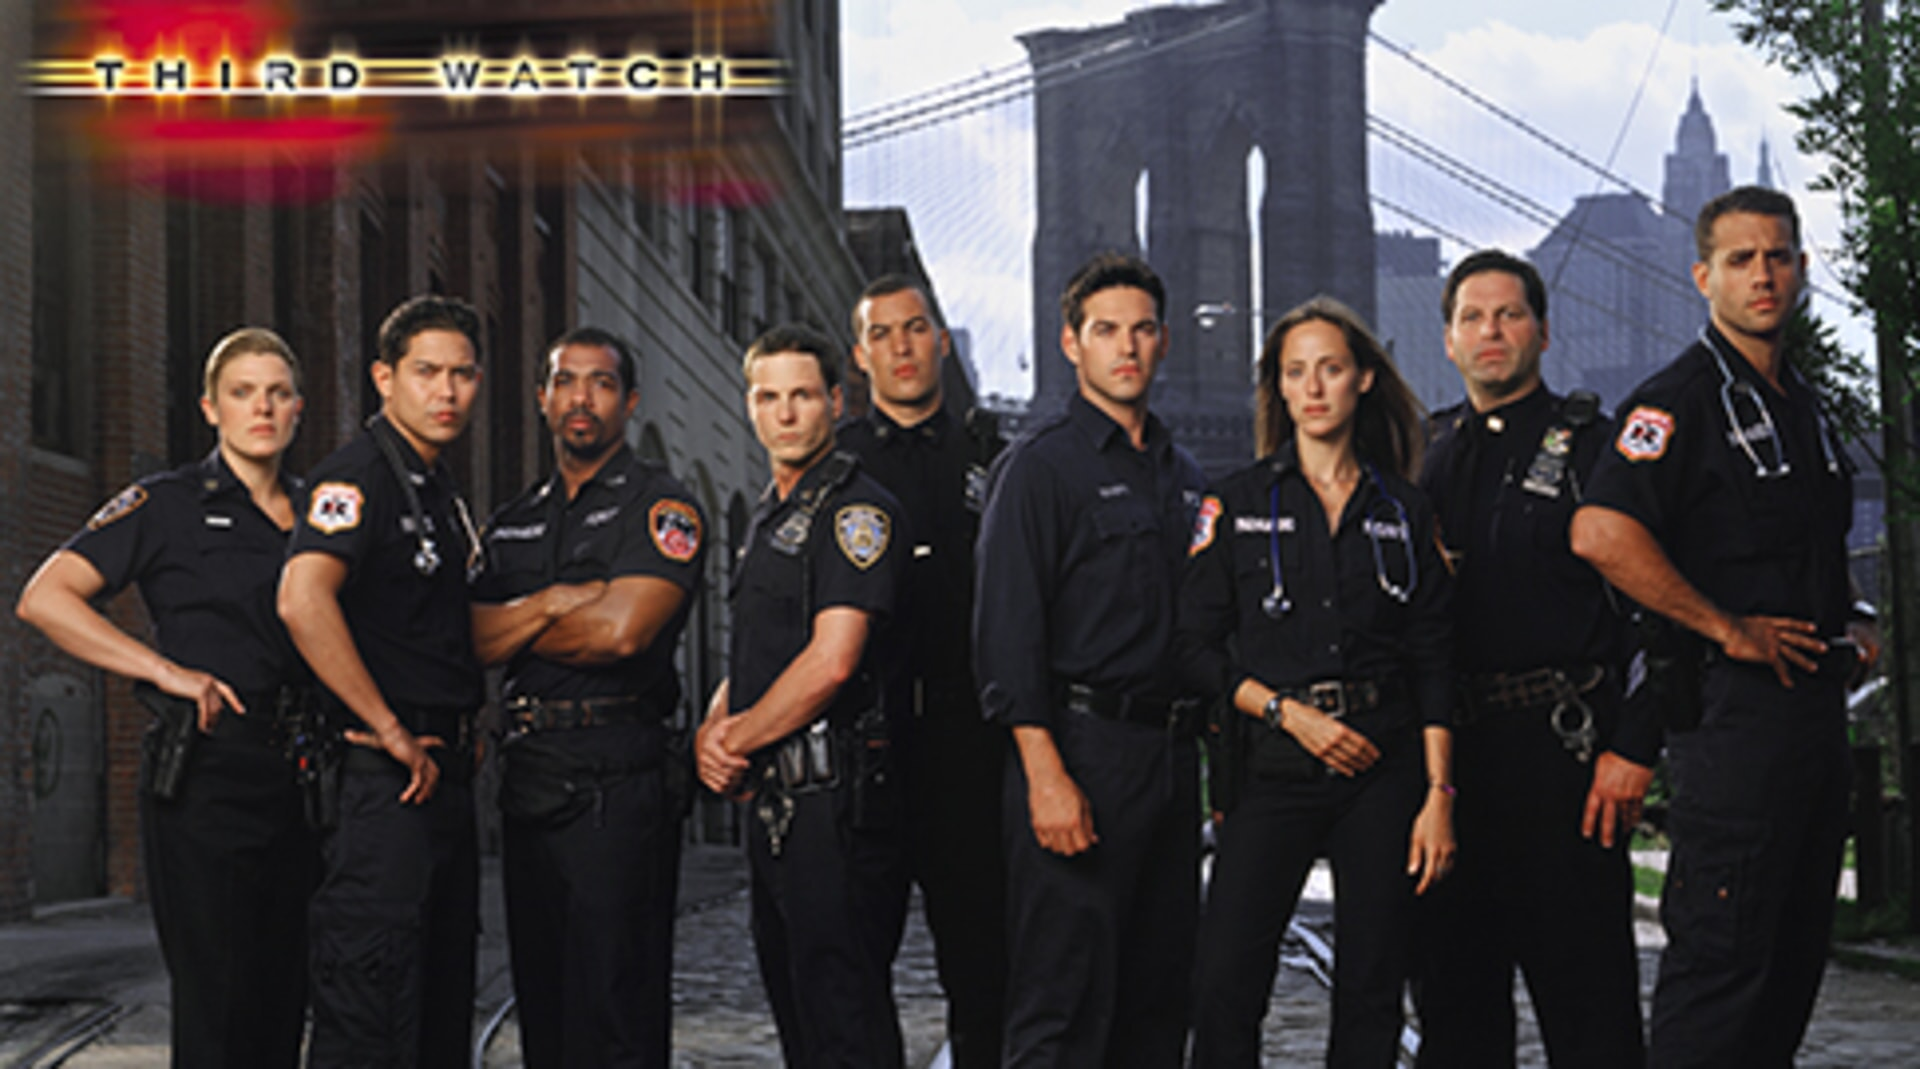 Third Watch: Season 1 - Image 1